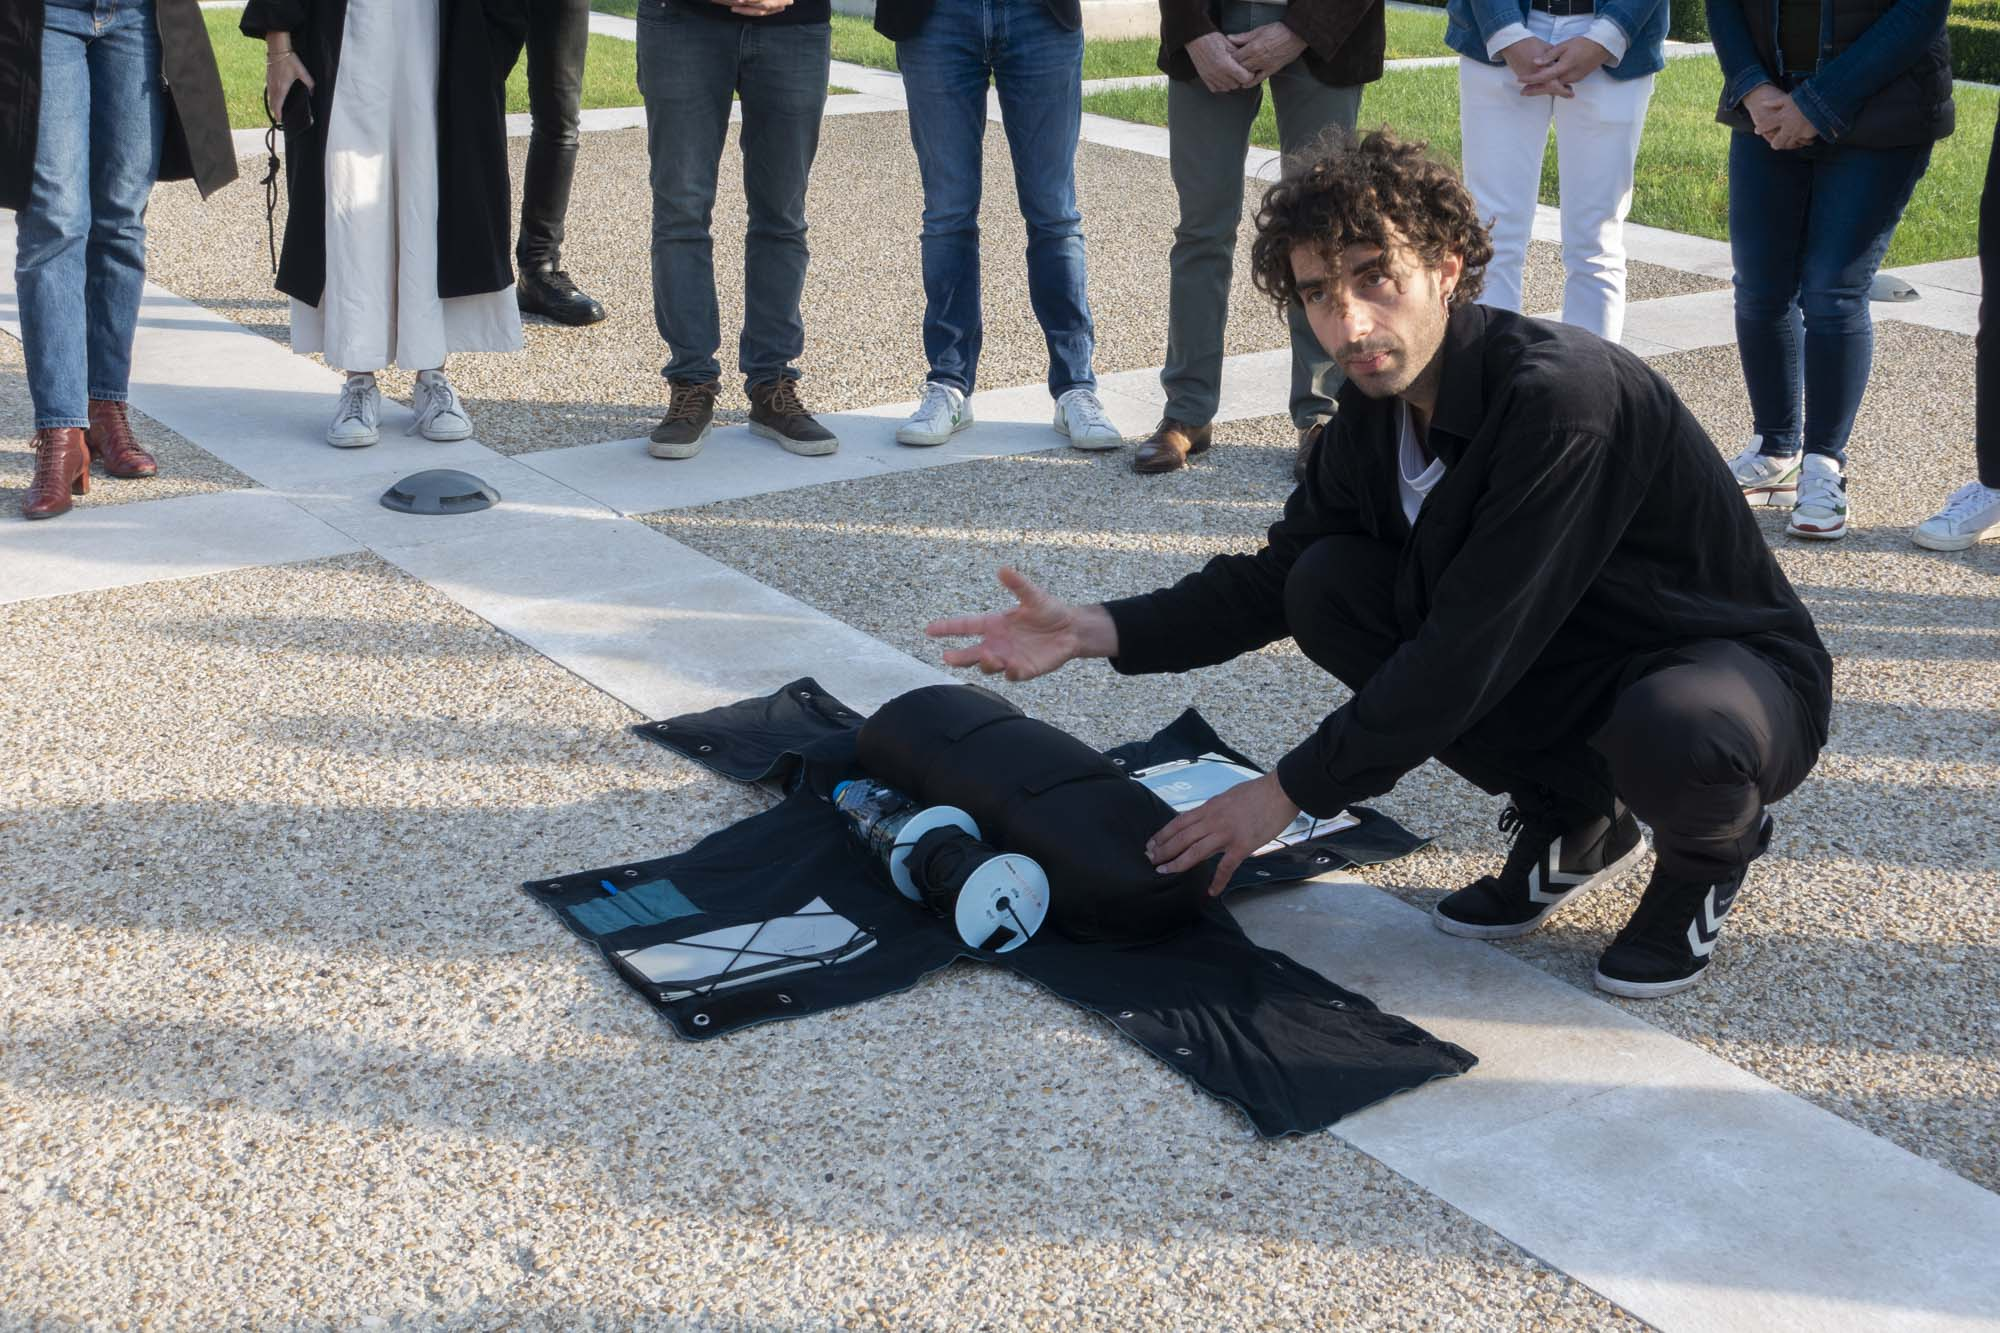 """Tomás Saraceno's assistant is presenting the """"aerocene backpack"""" outside of Maison Ruinart in Reims"""